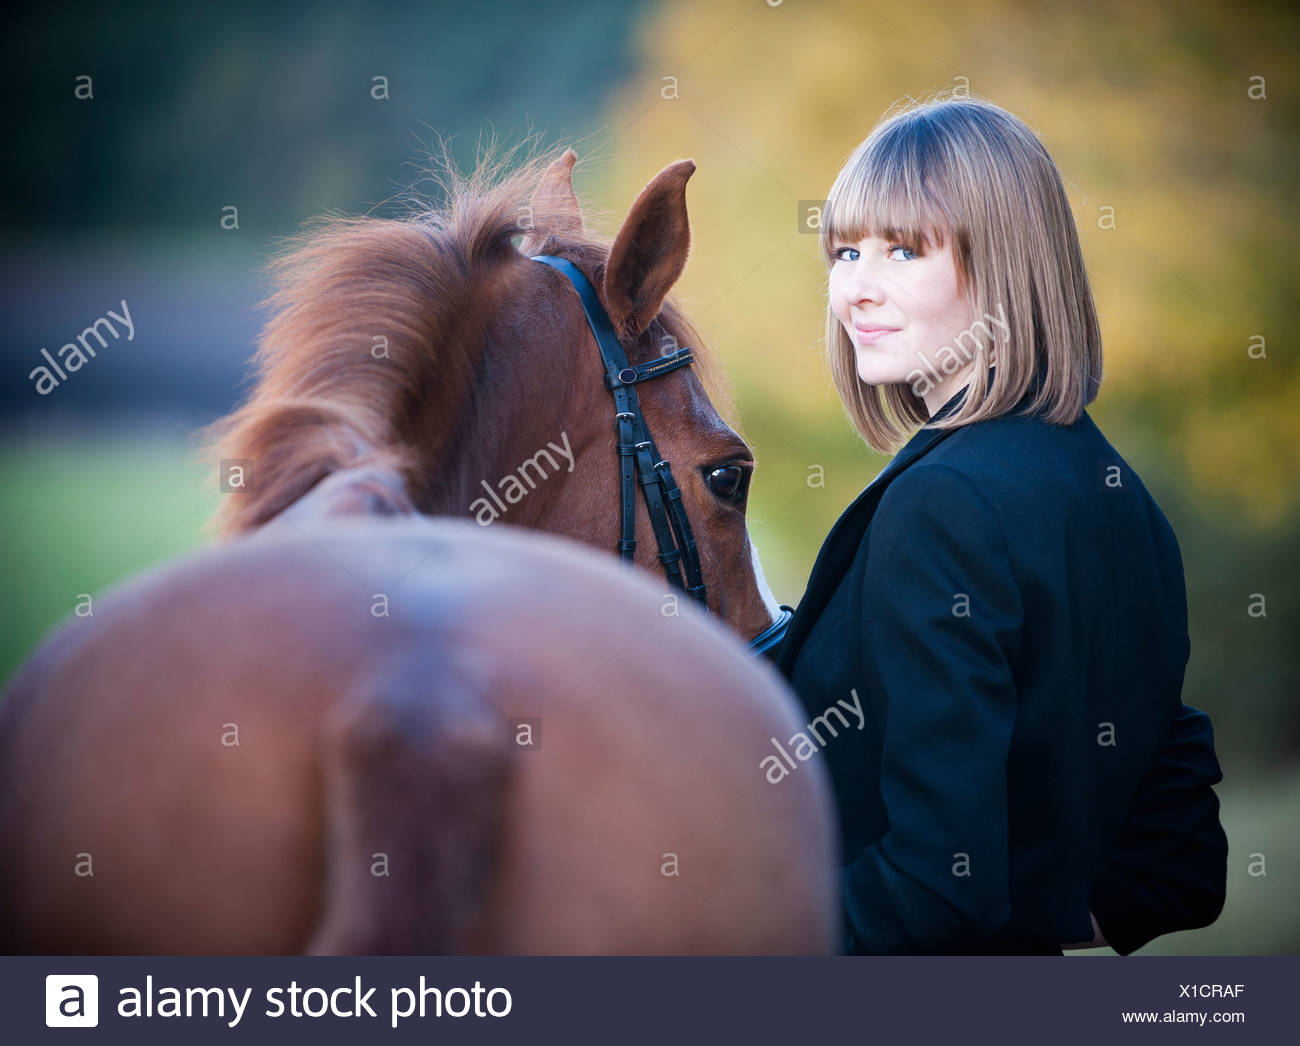 A woman leading a bay horse by the bridle. - Stock Image